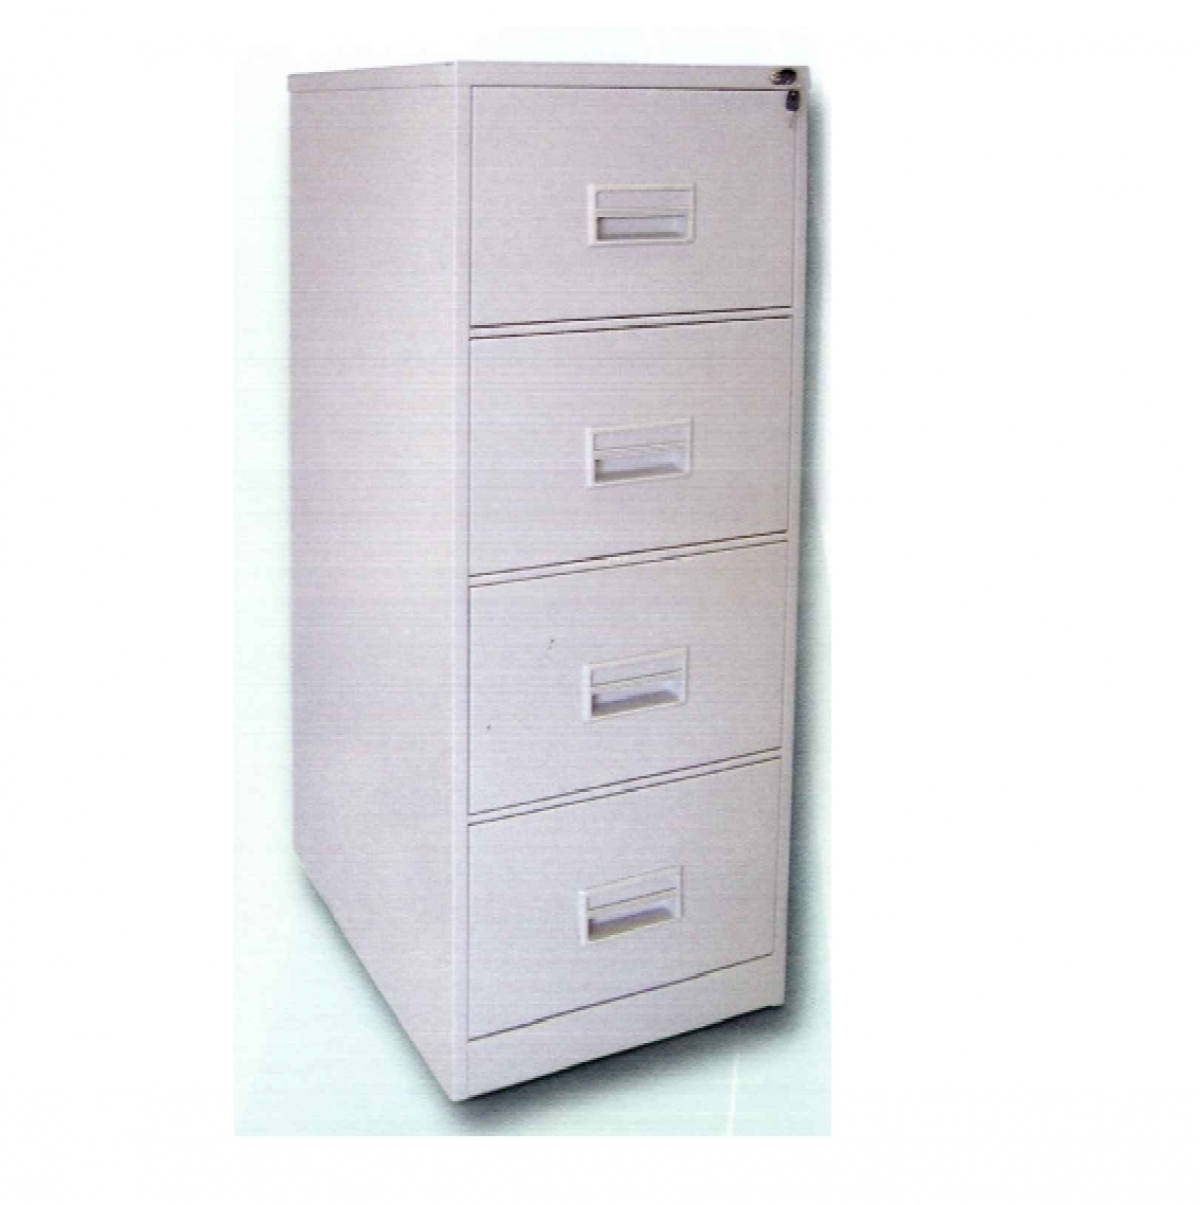 4 Drawer Steel Filing Cabinet With Recess Handle Model: O S106/AB